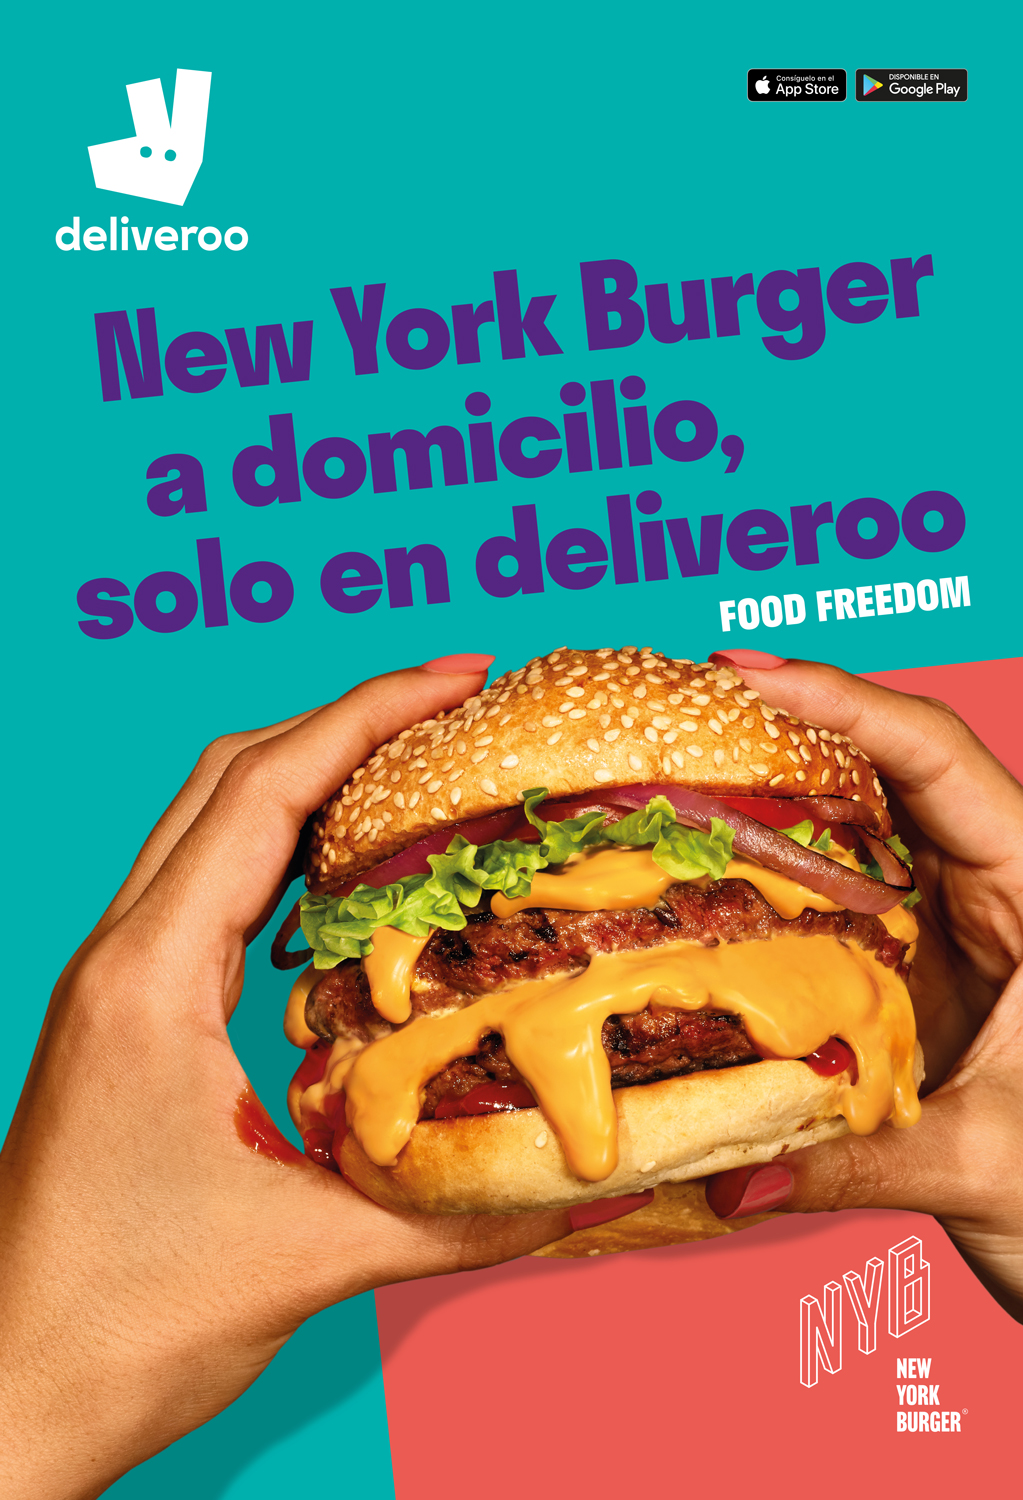 Approach_Retouch_London_Deliveroo_Spain_NYBurger_Text